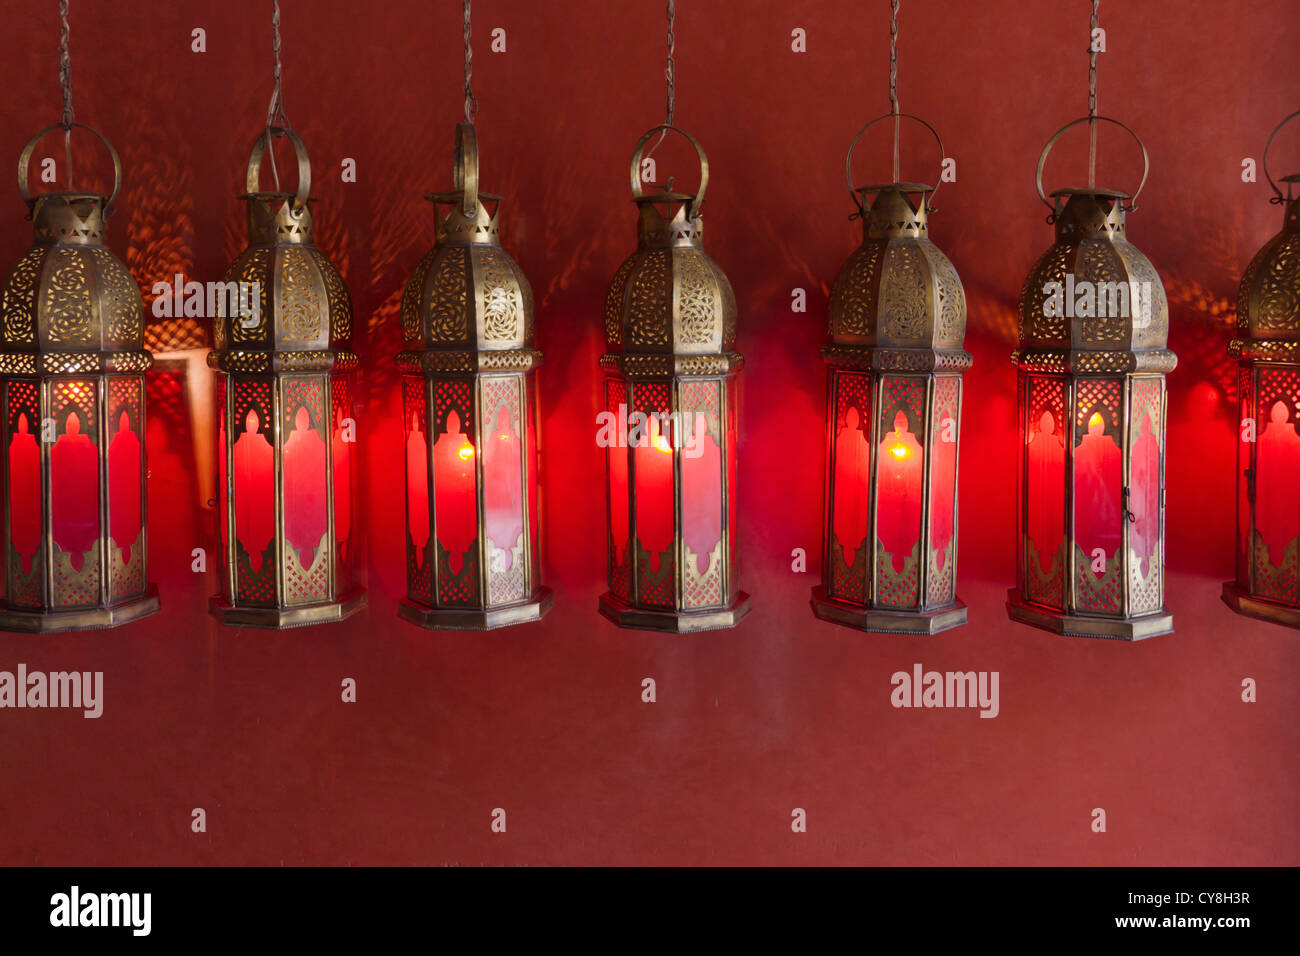 Traditional lamps in the old medina, Marrakech, Morocco - Stock Image